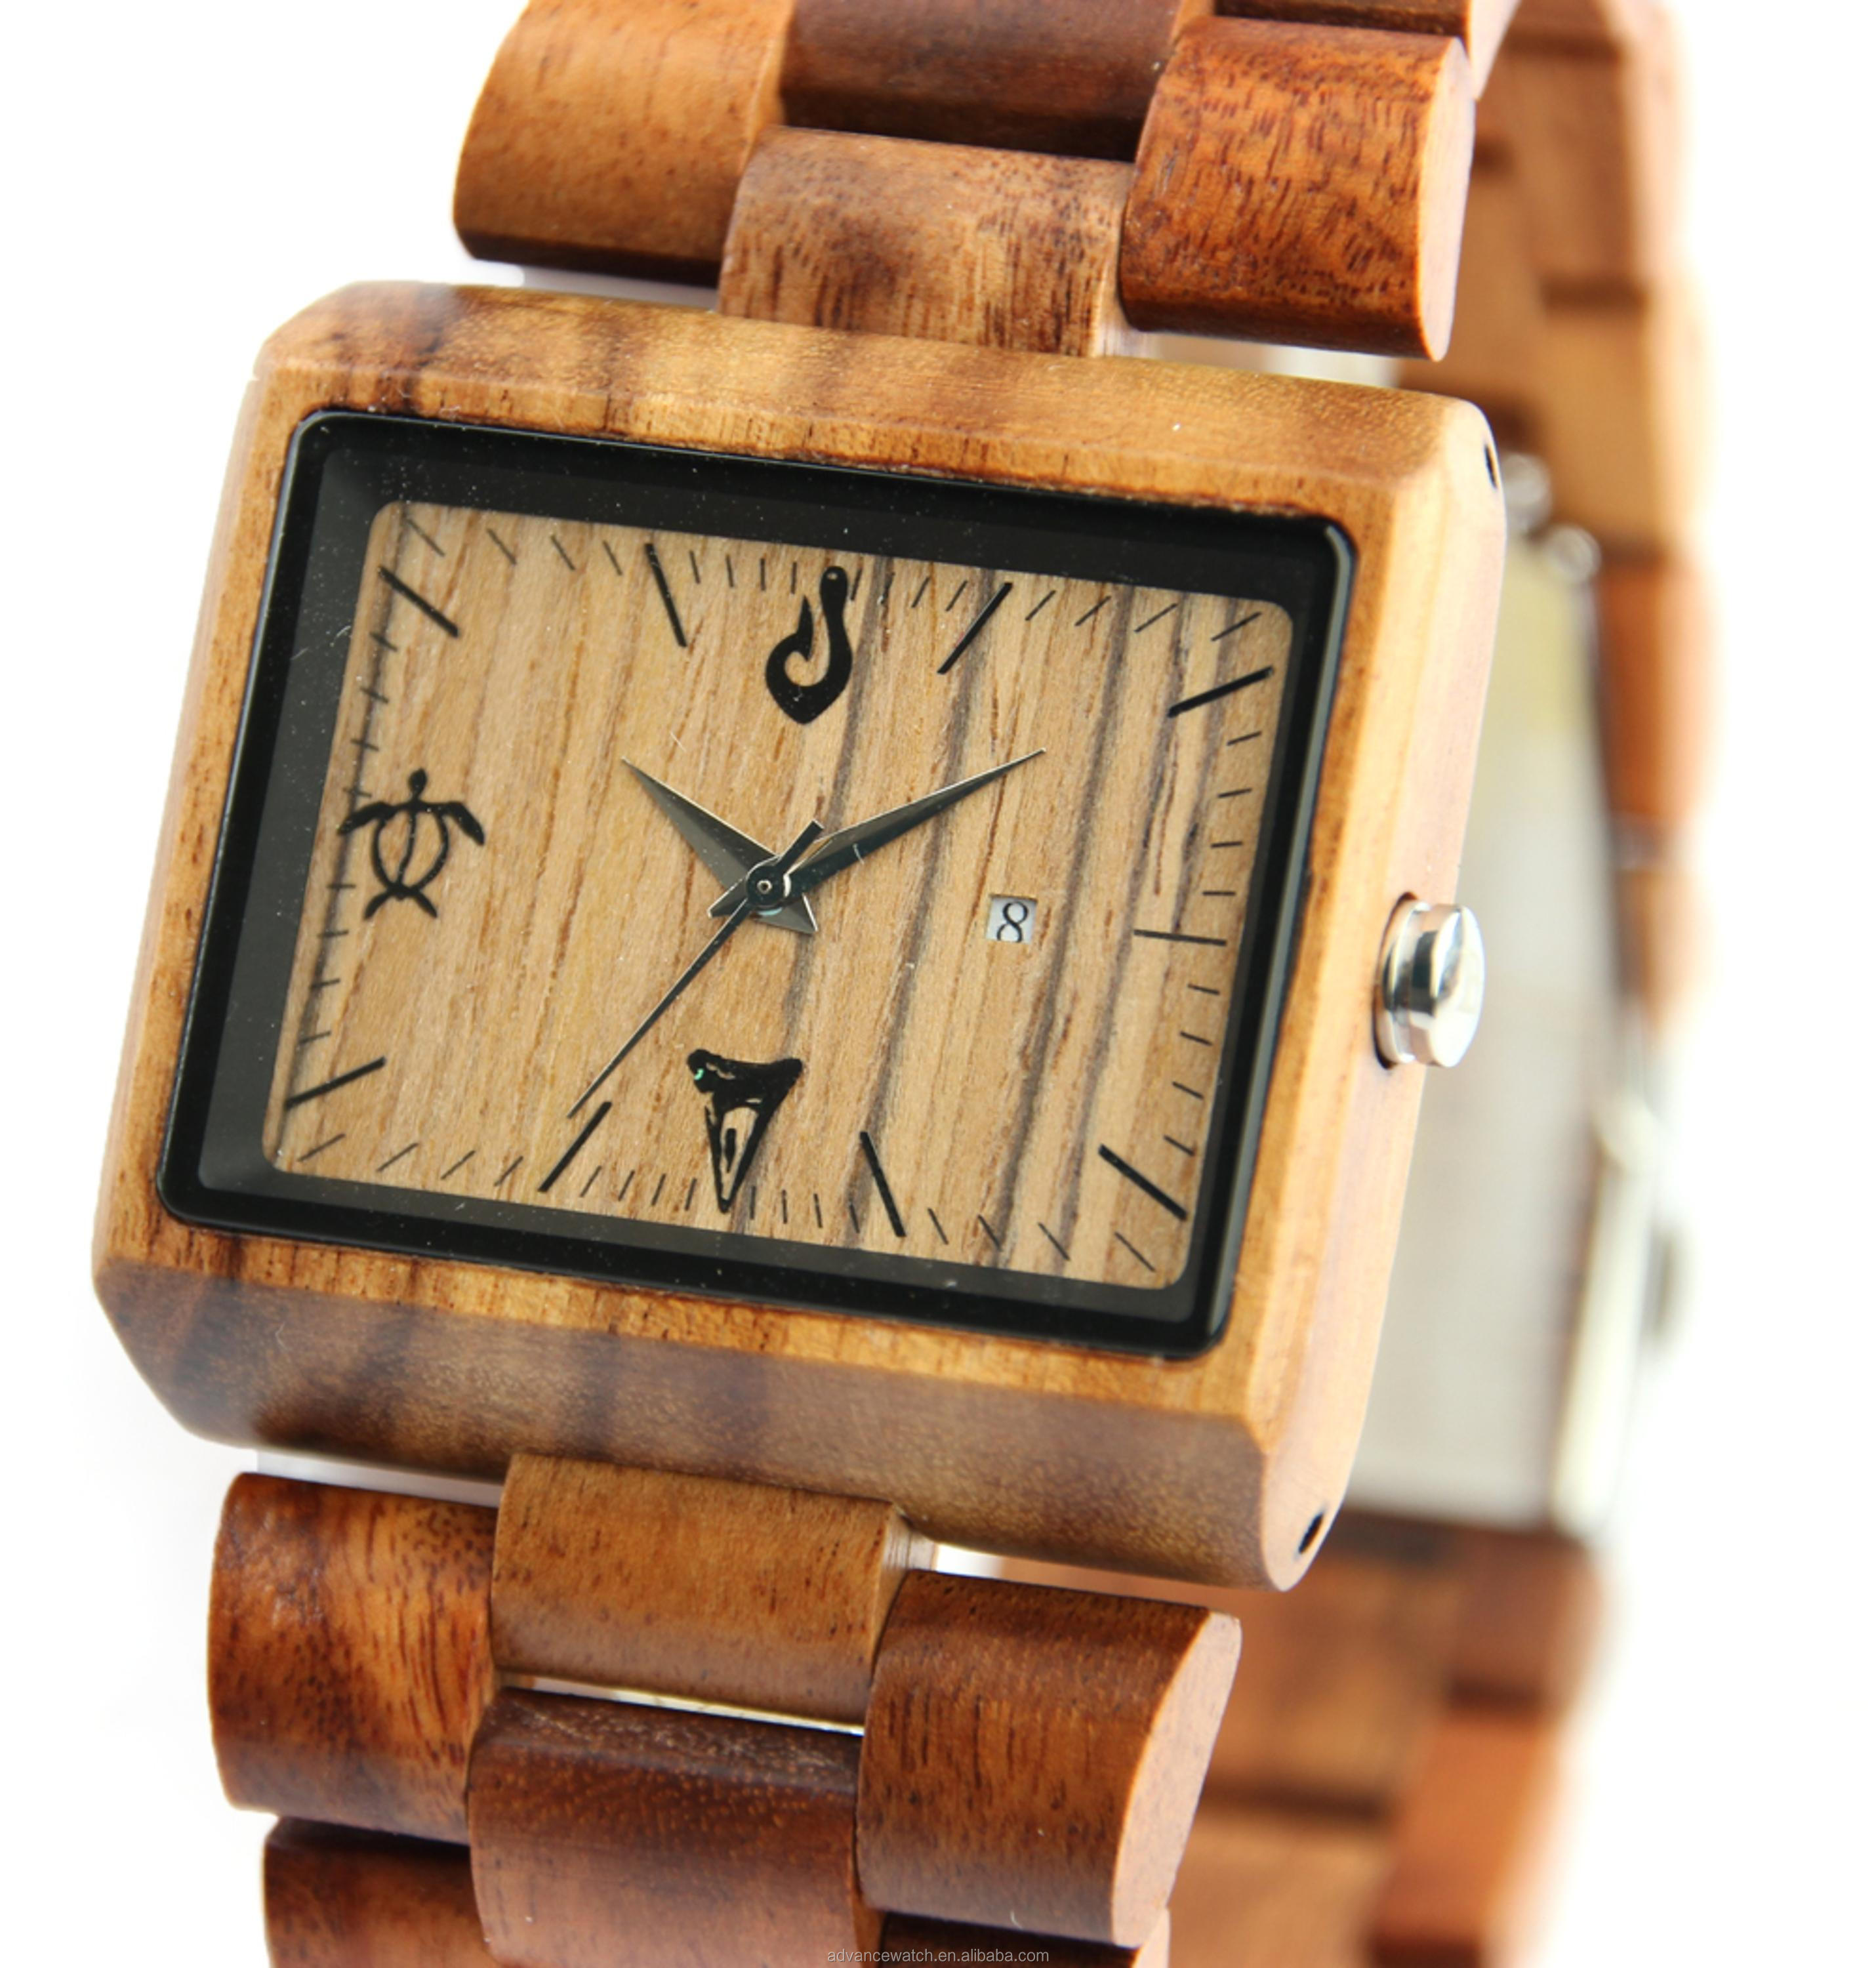 Wholesale square shape all wood watches with wood band and wood veneer face watch